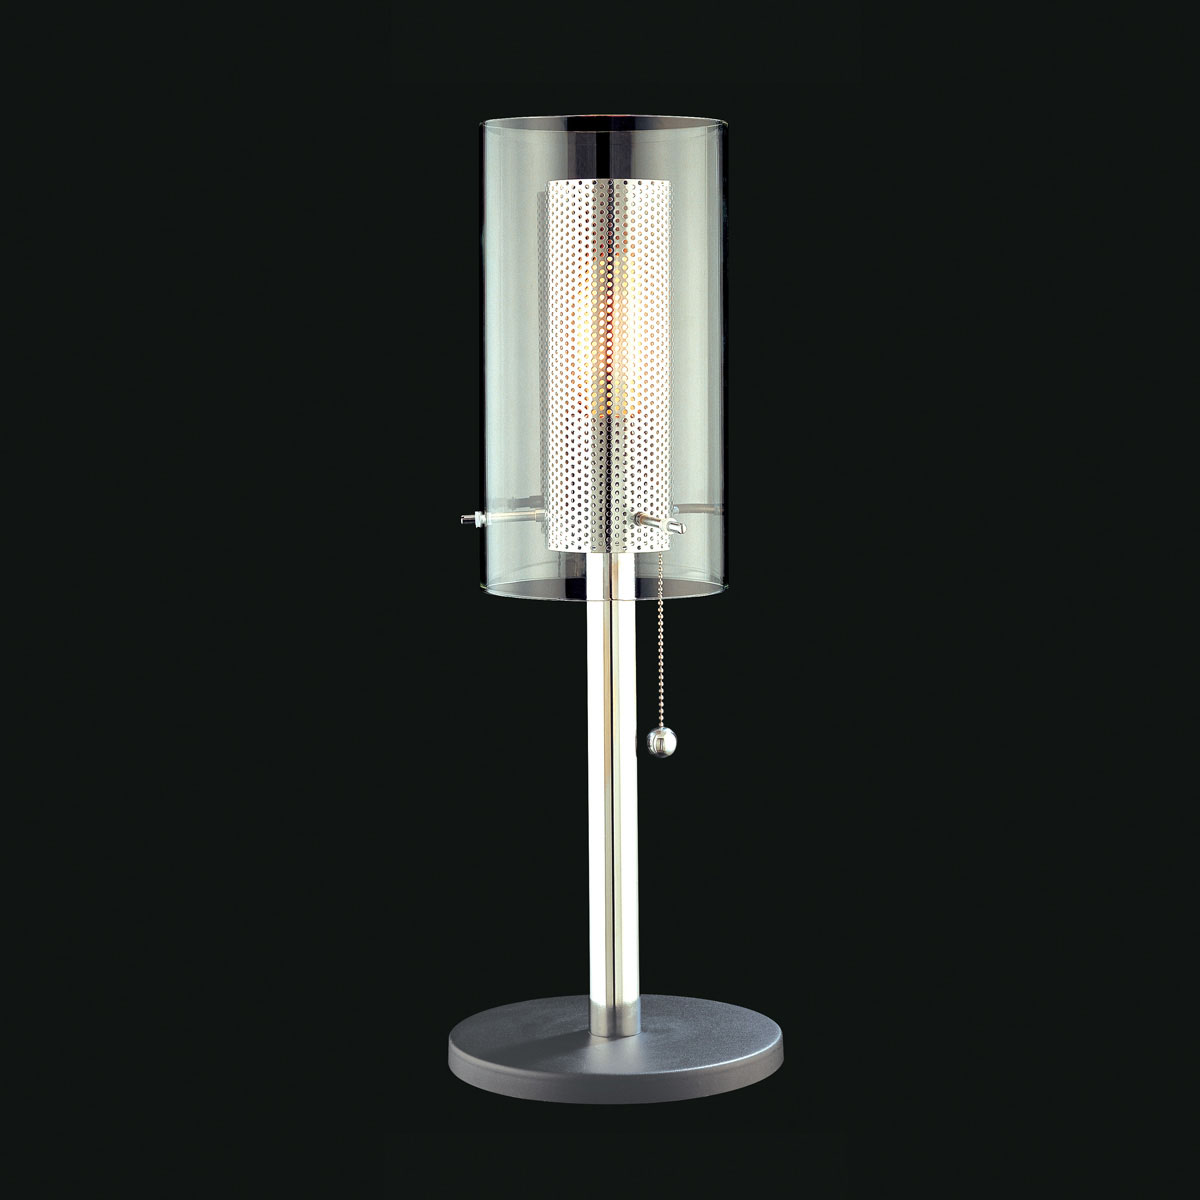 Zylinder Table Lamp 300.0000